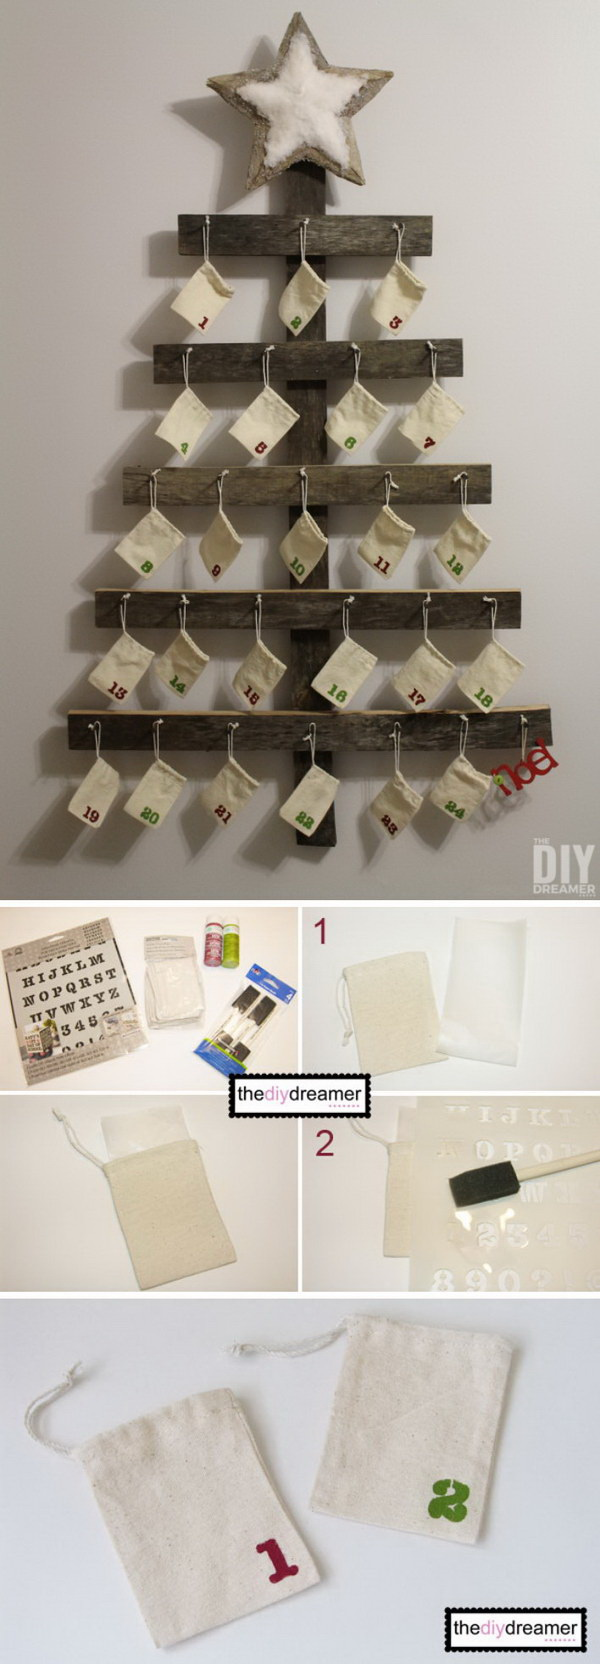 Wall Mounted Christmas Advent Calendar. This DIY advent calendar is the cutest ways to pass the days until Christmas.